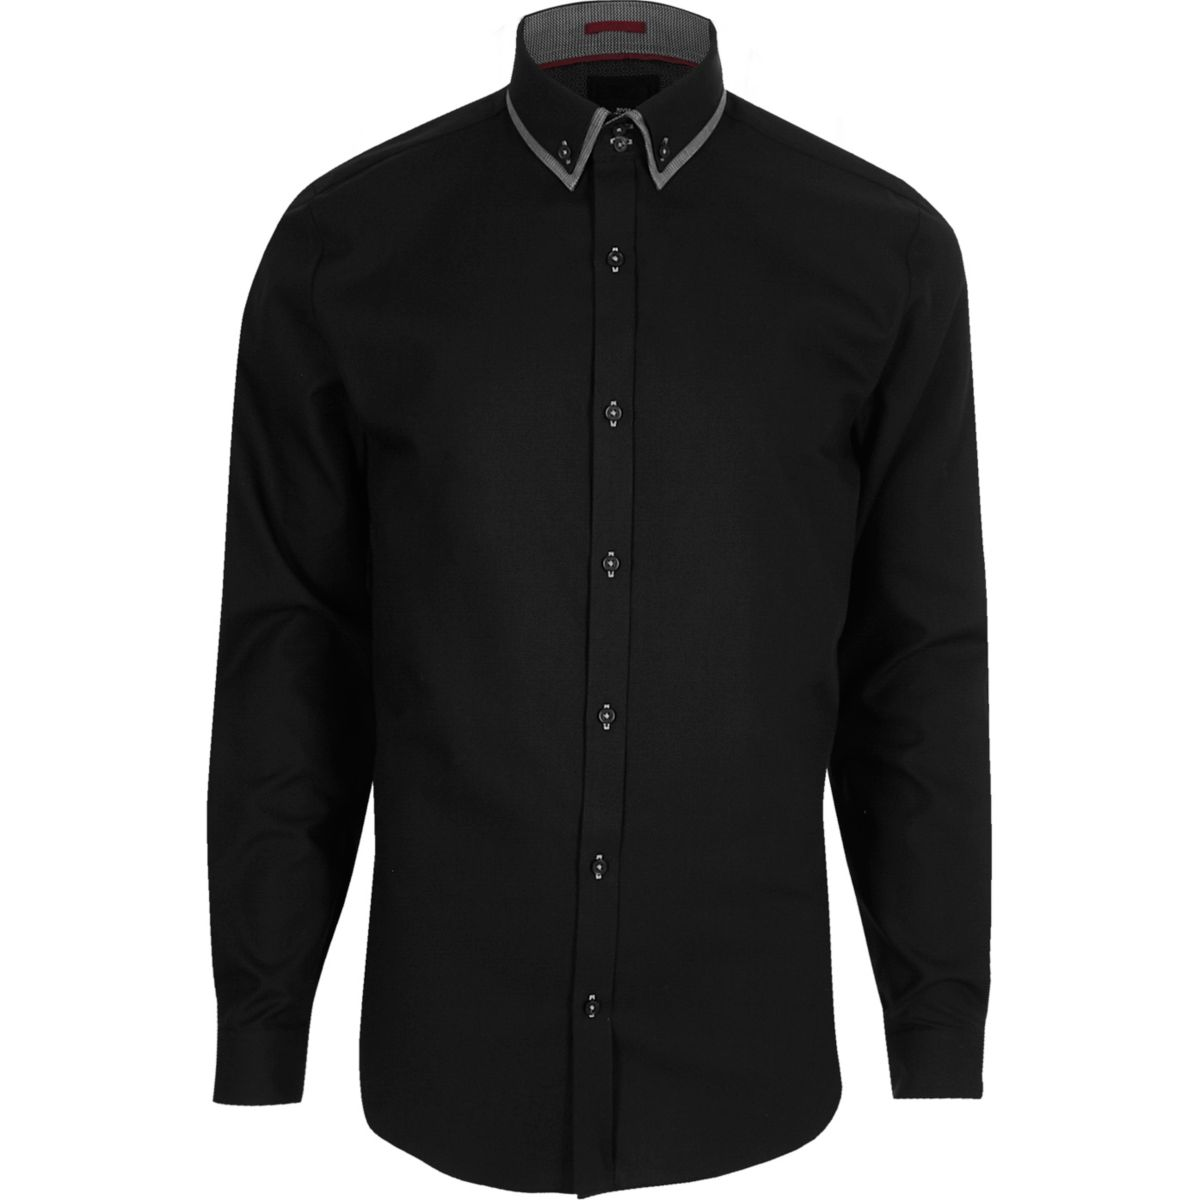 Black double collar slim fit smart shirt